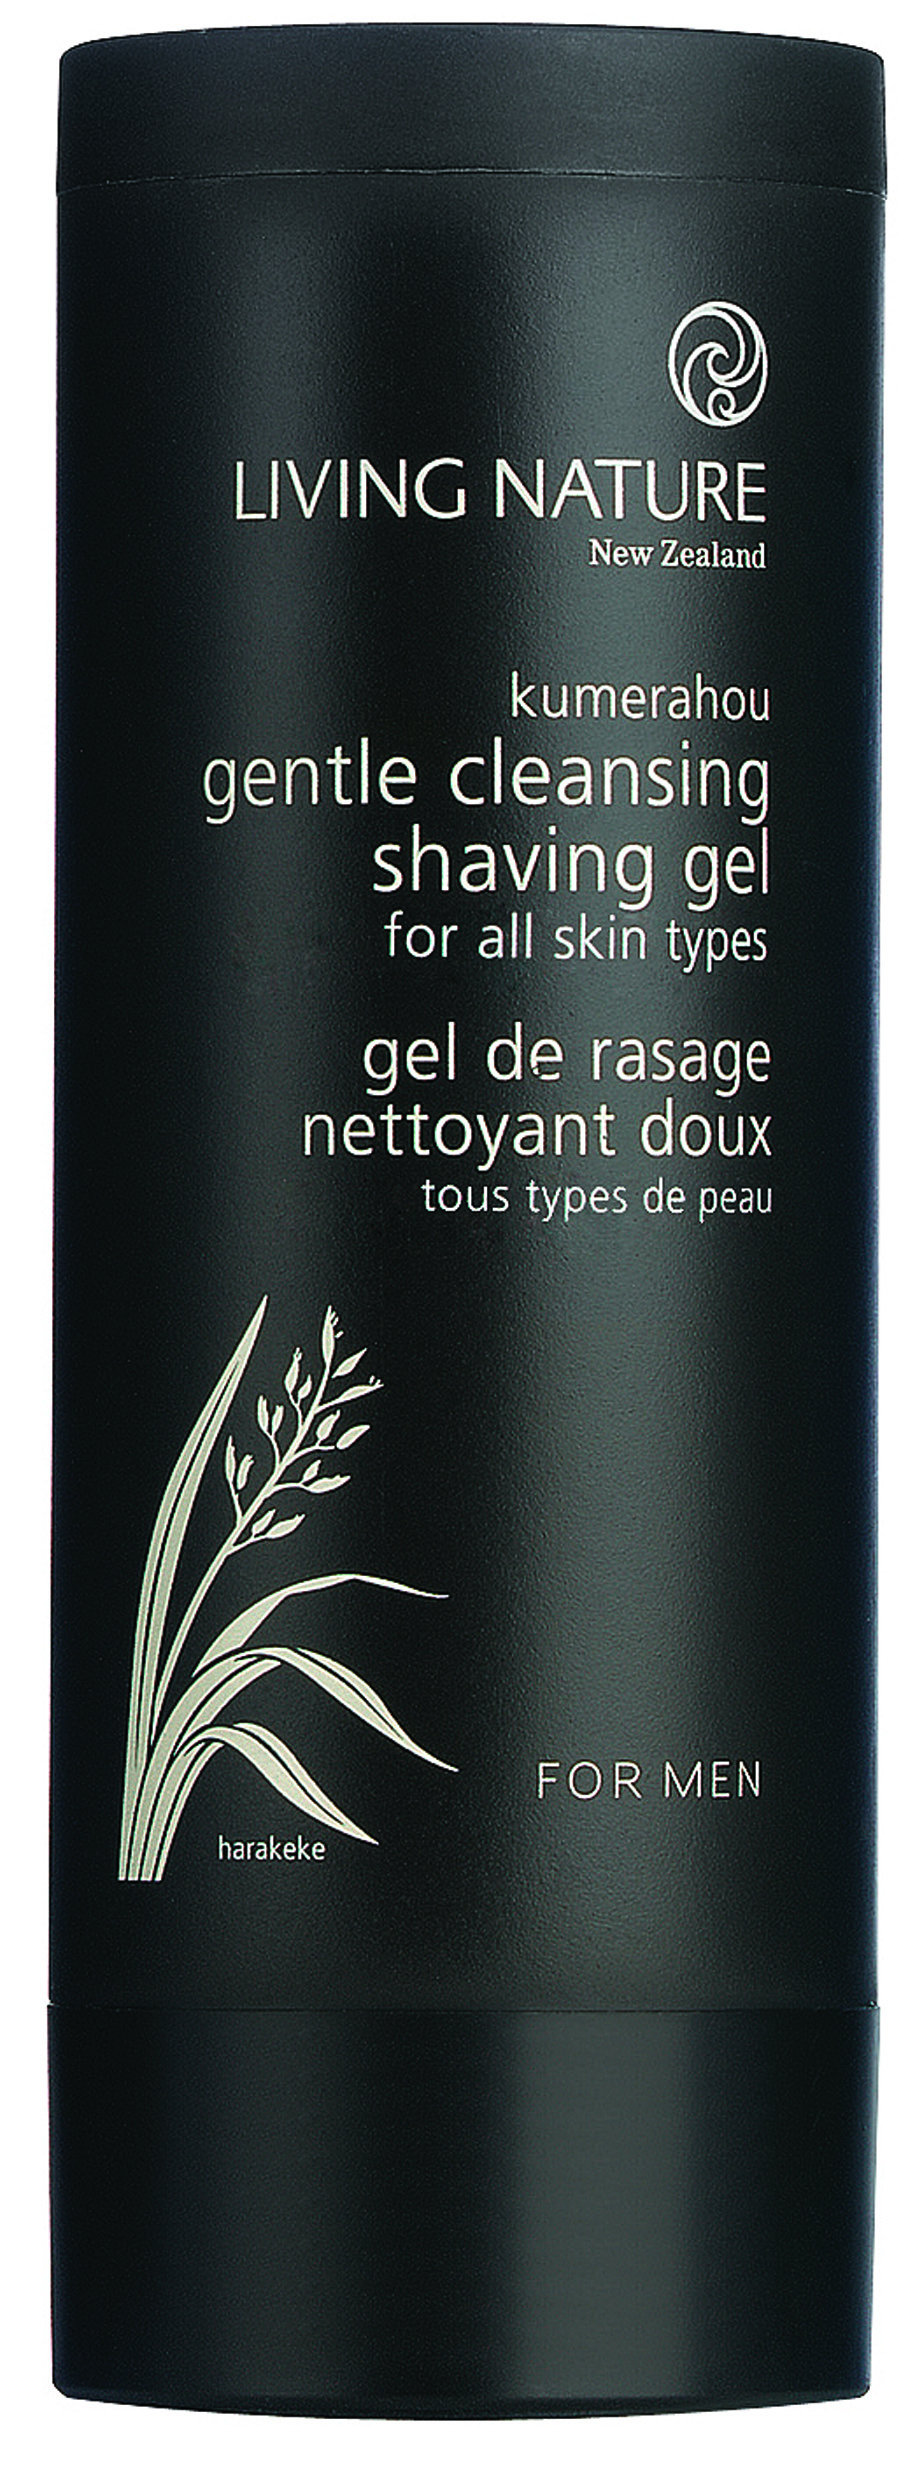 Mens Gentle Cleansing Shaving Gel